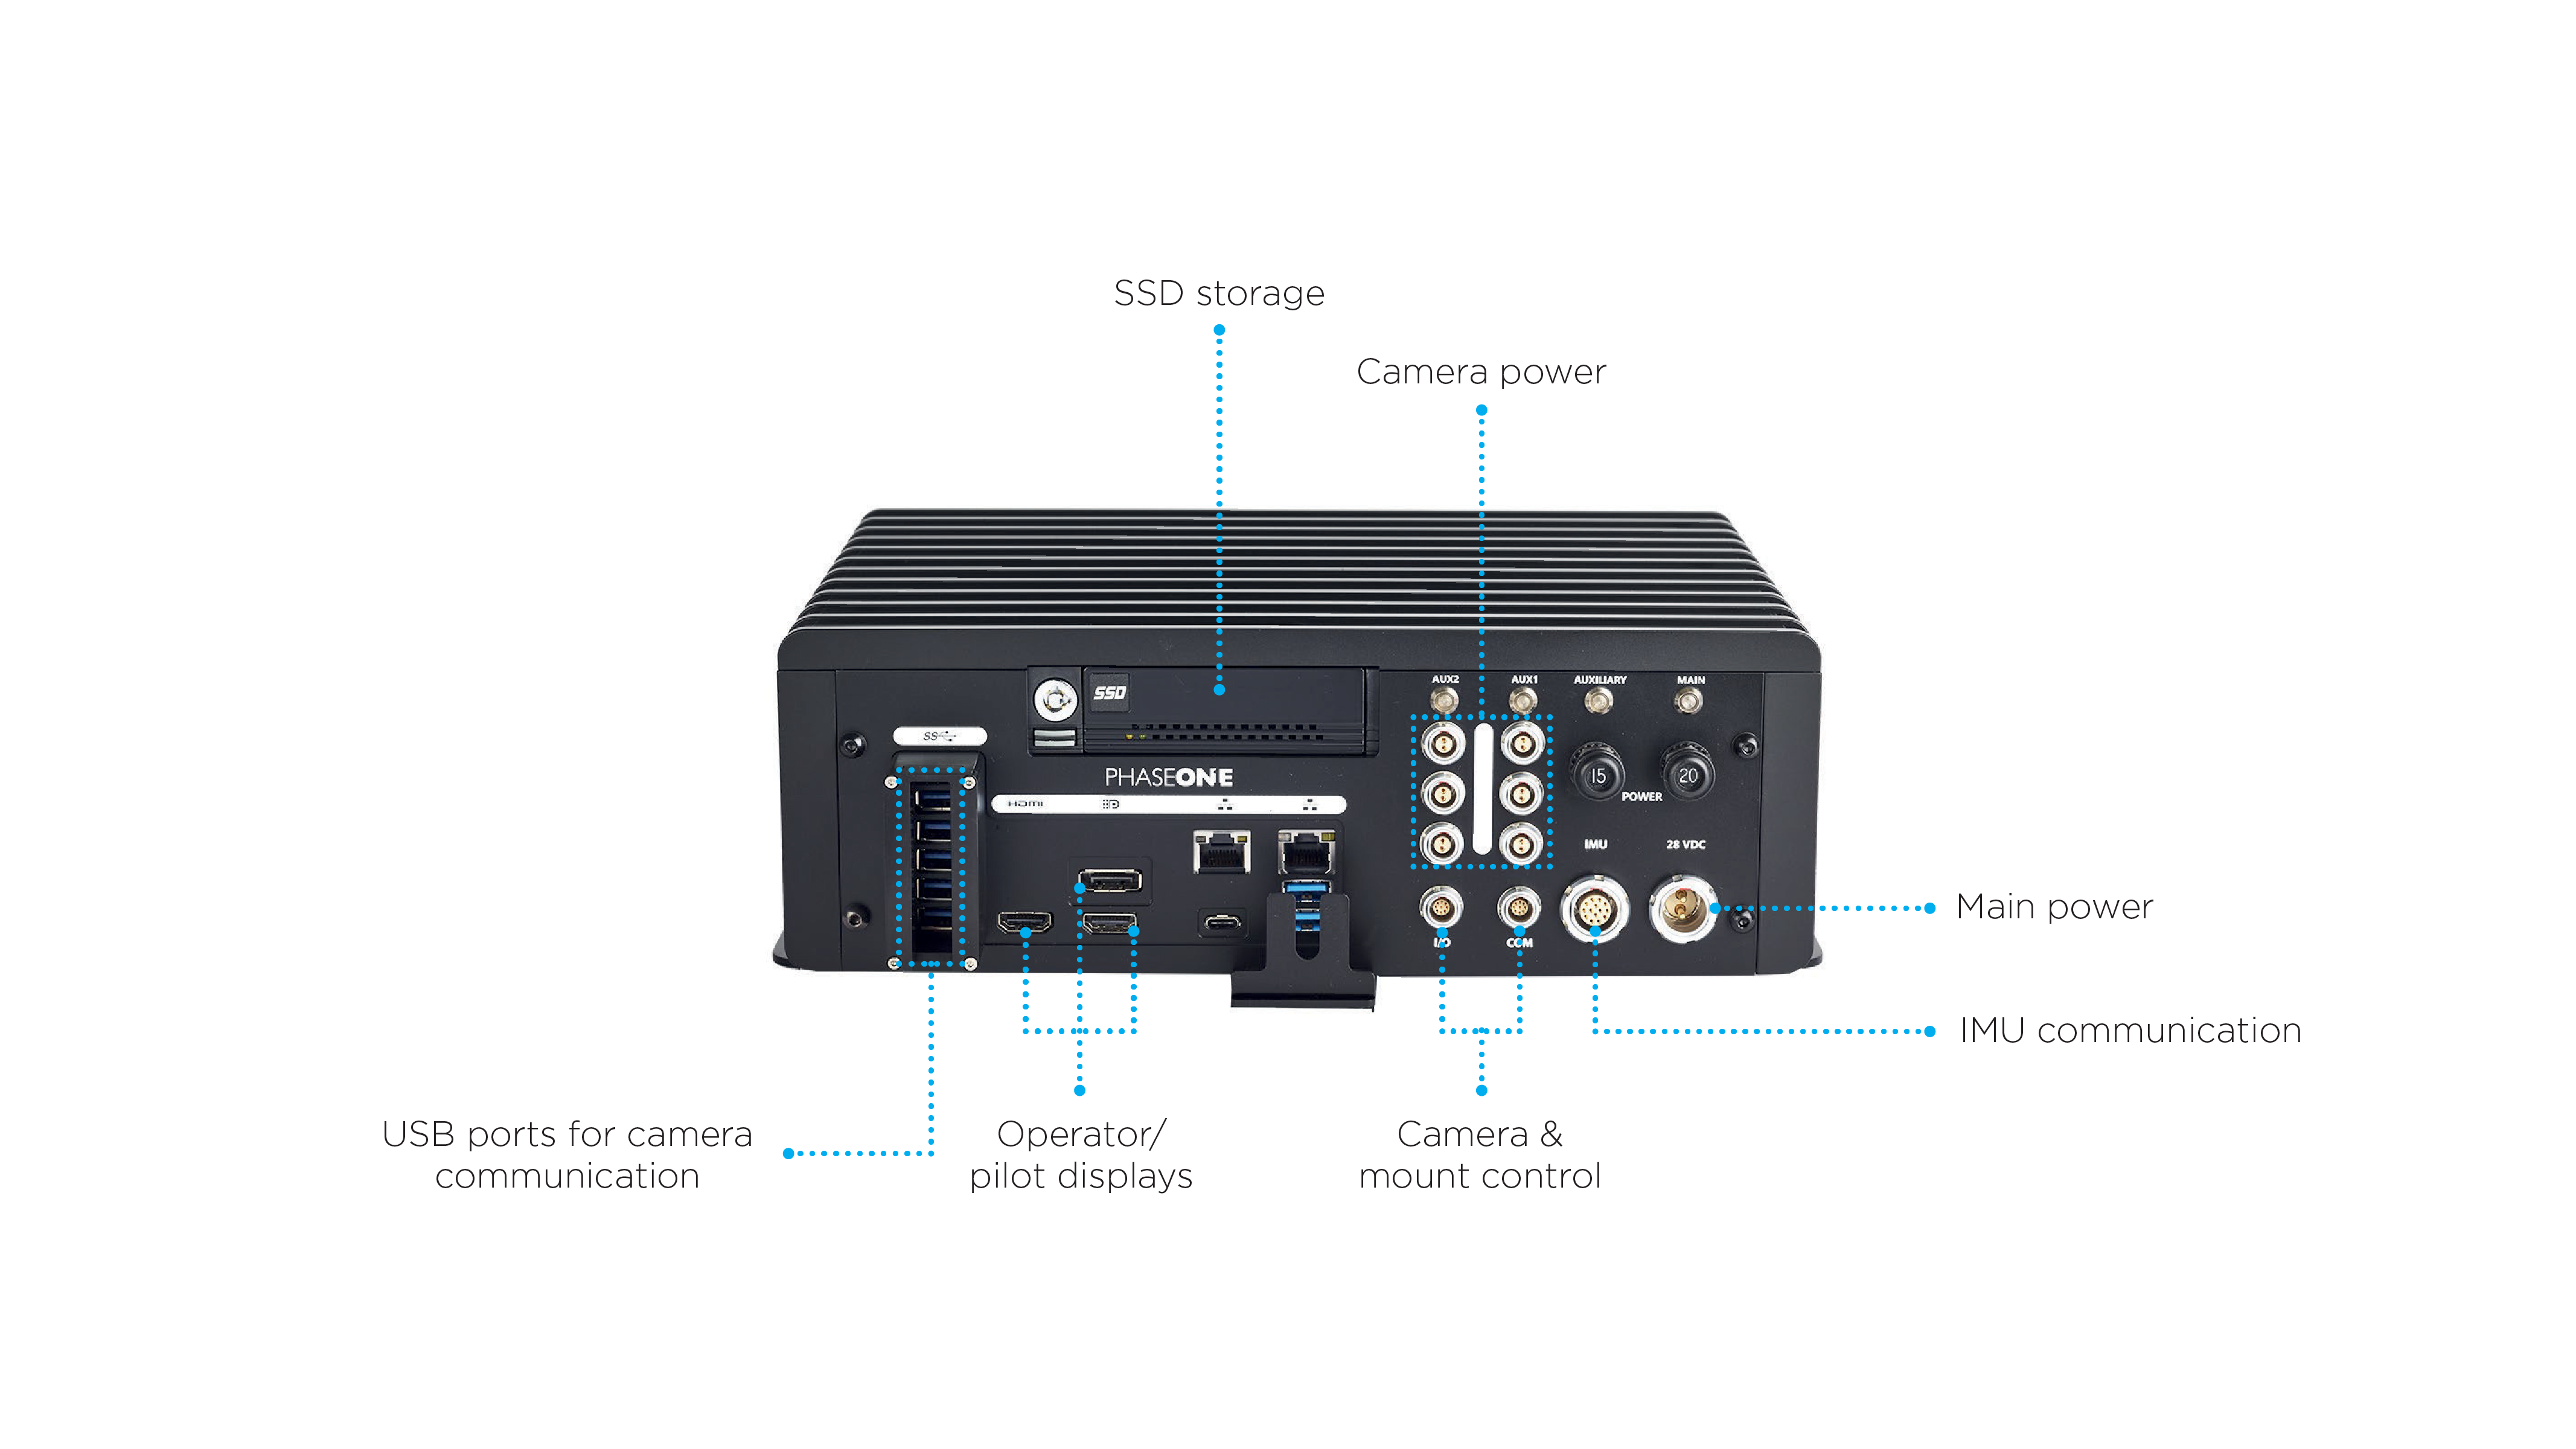 Phase One iX Controller MK5 features